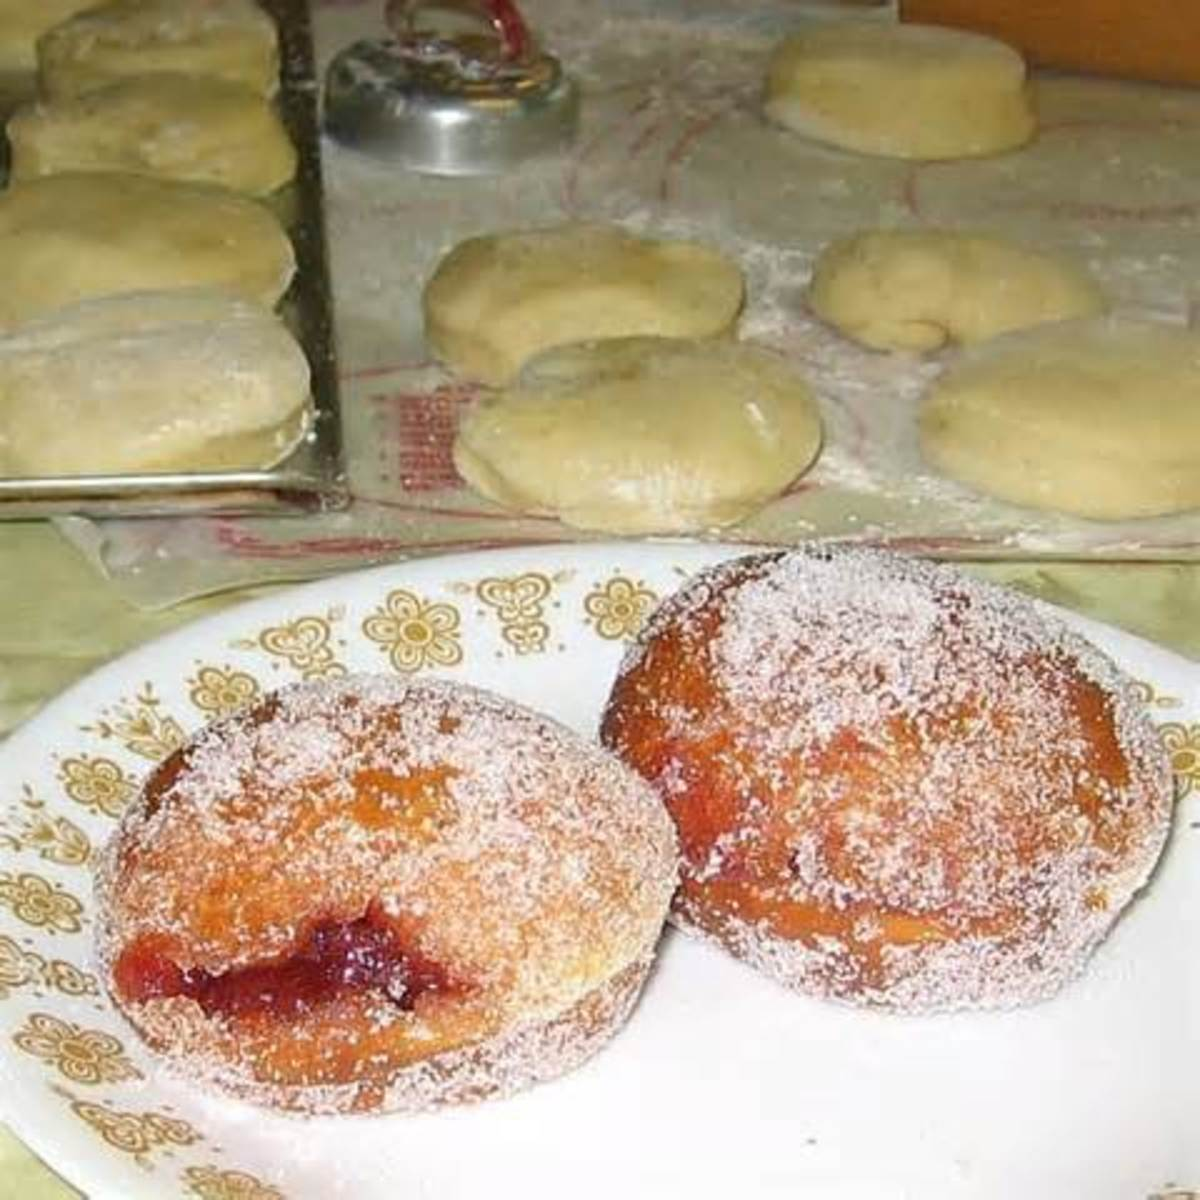 filled paczki sprinkled with sugar